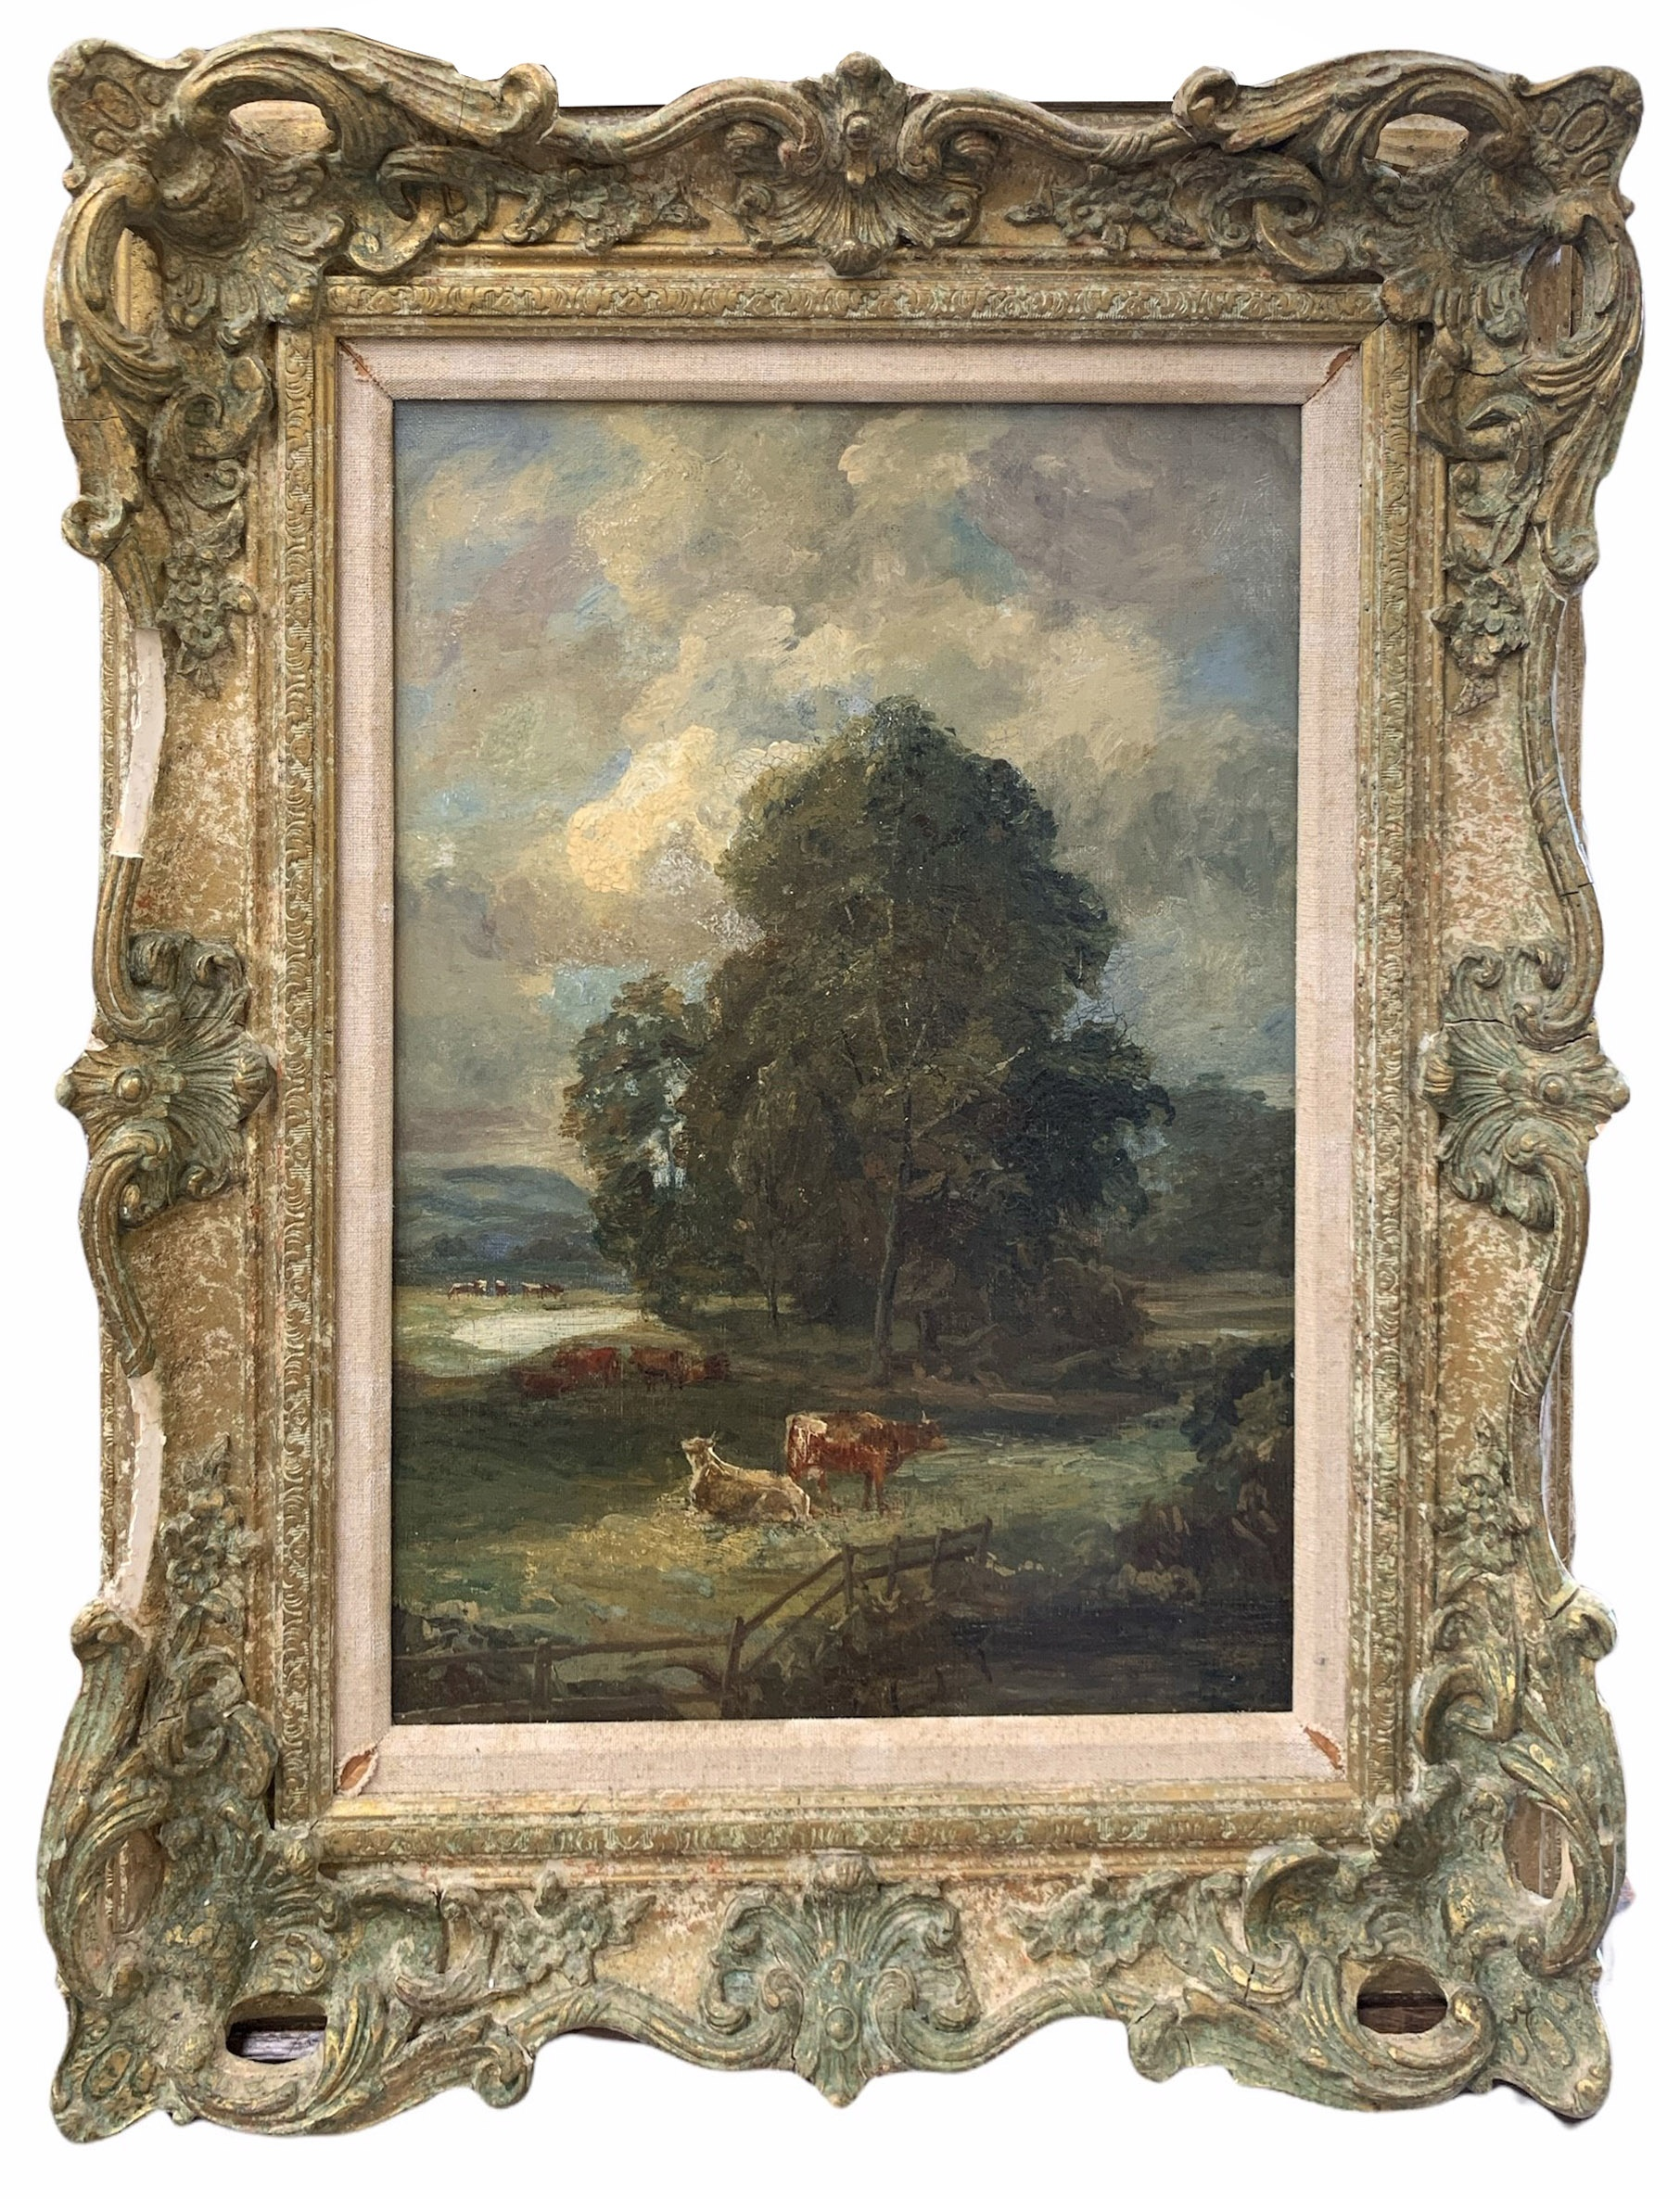 CIRCLE OF JOHN CONSTABLE, R.A., EAST BERGHOLT, SUFFOLK, 1776 - 1837, HAMPSTEAD, 19TH CENTURY OIL